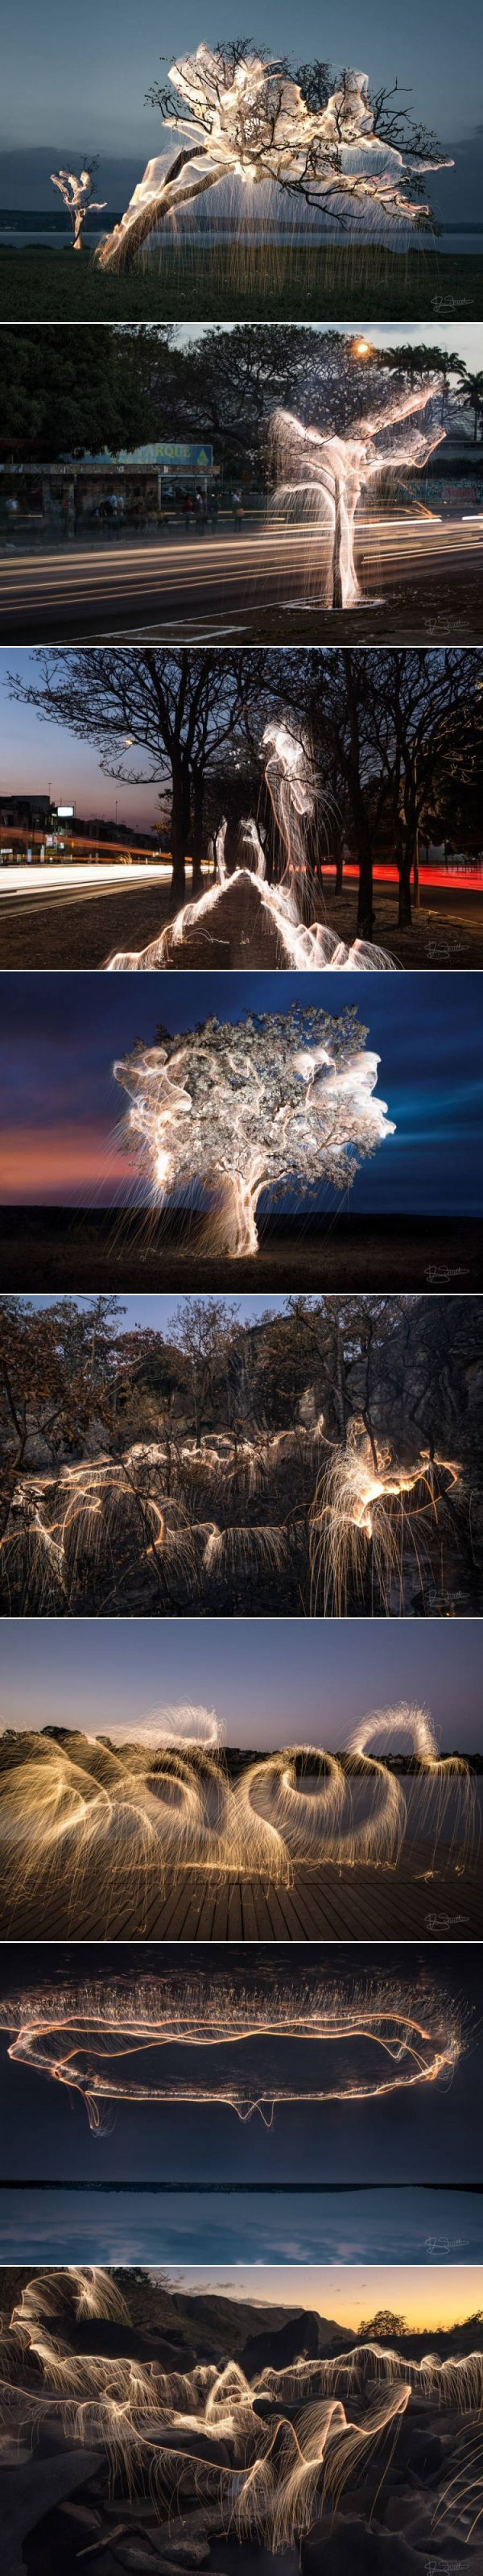 Light Painting Photography in Nature and Cities by Vitor